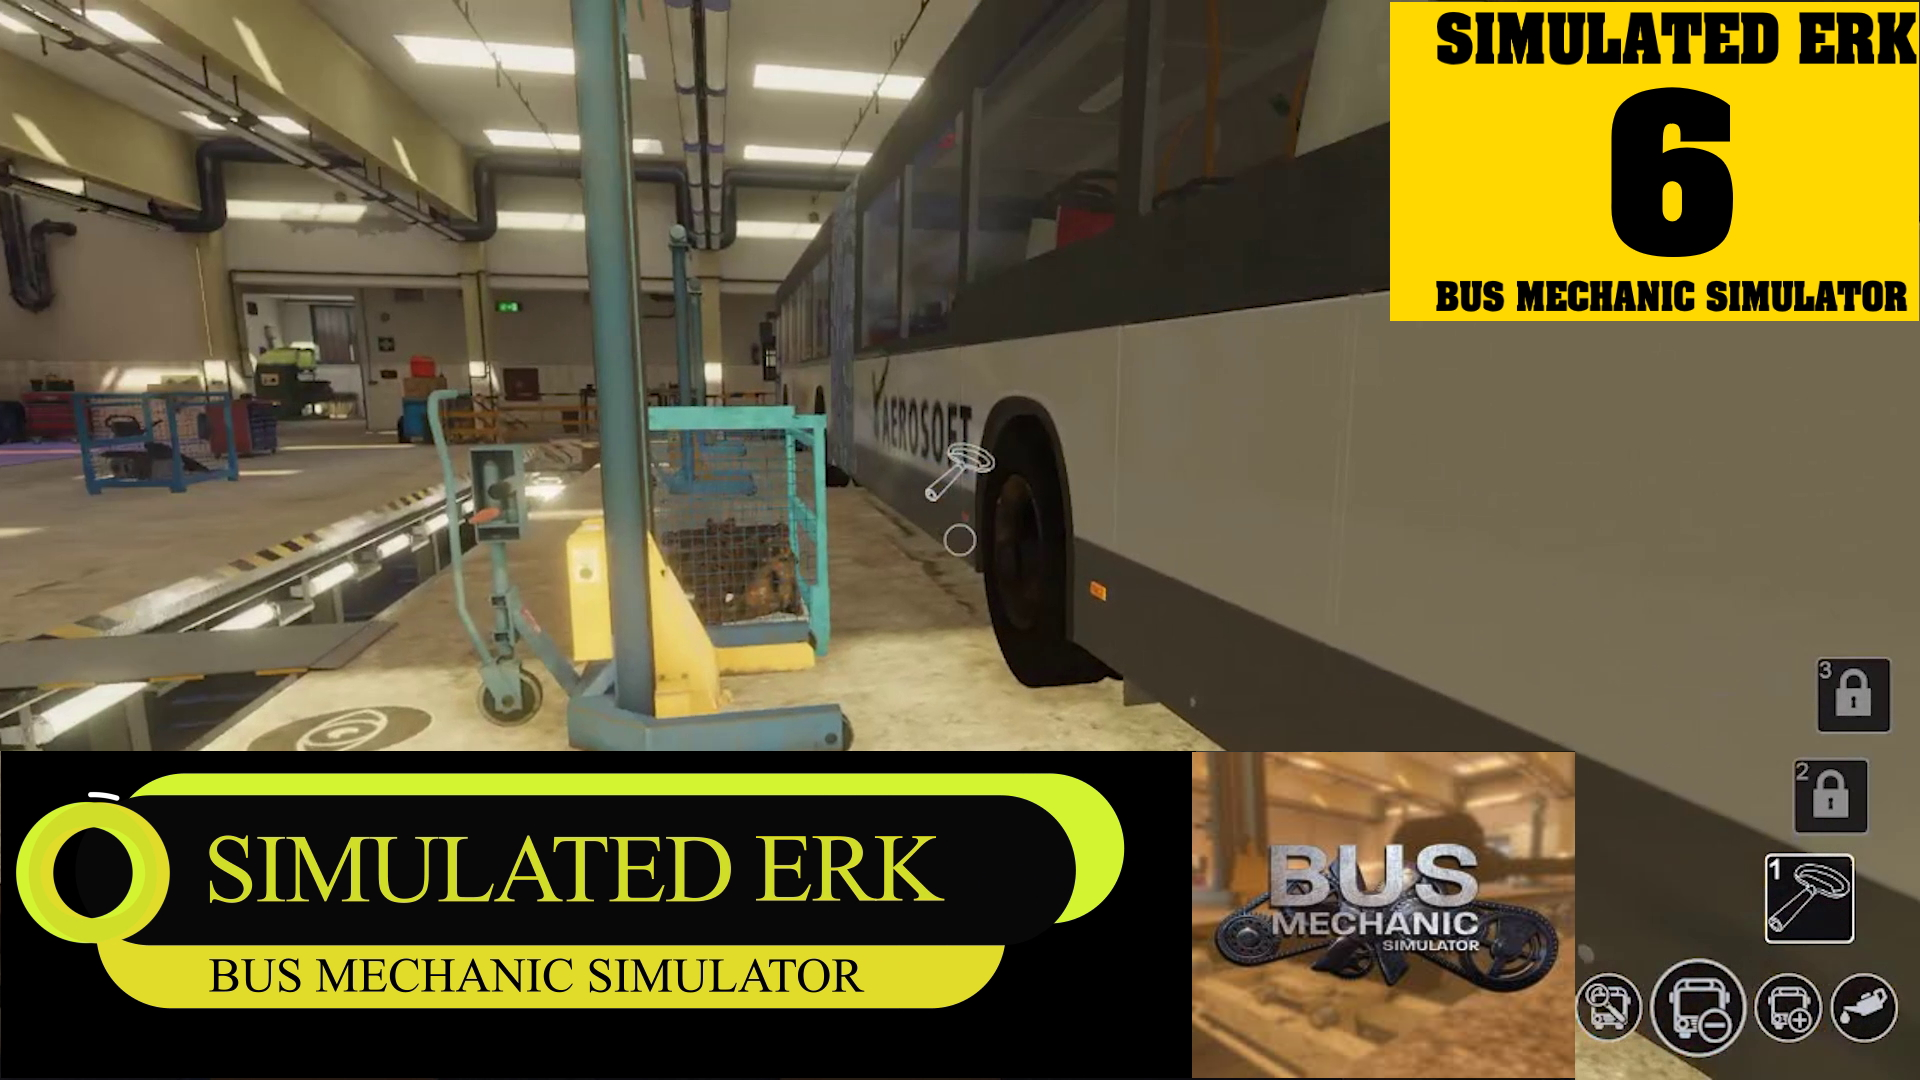 Simulated Erk: Bus Mechanic Simulator episode 6 | You've Got To Keep It Articulated!